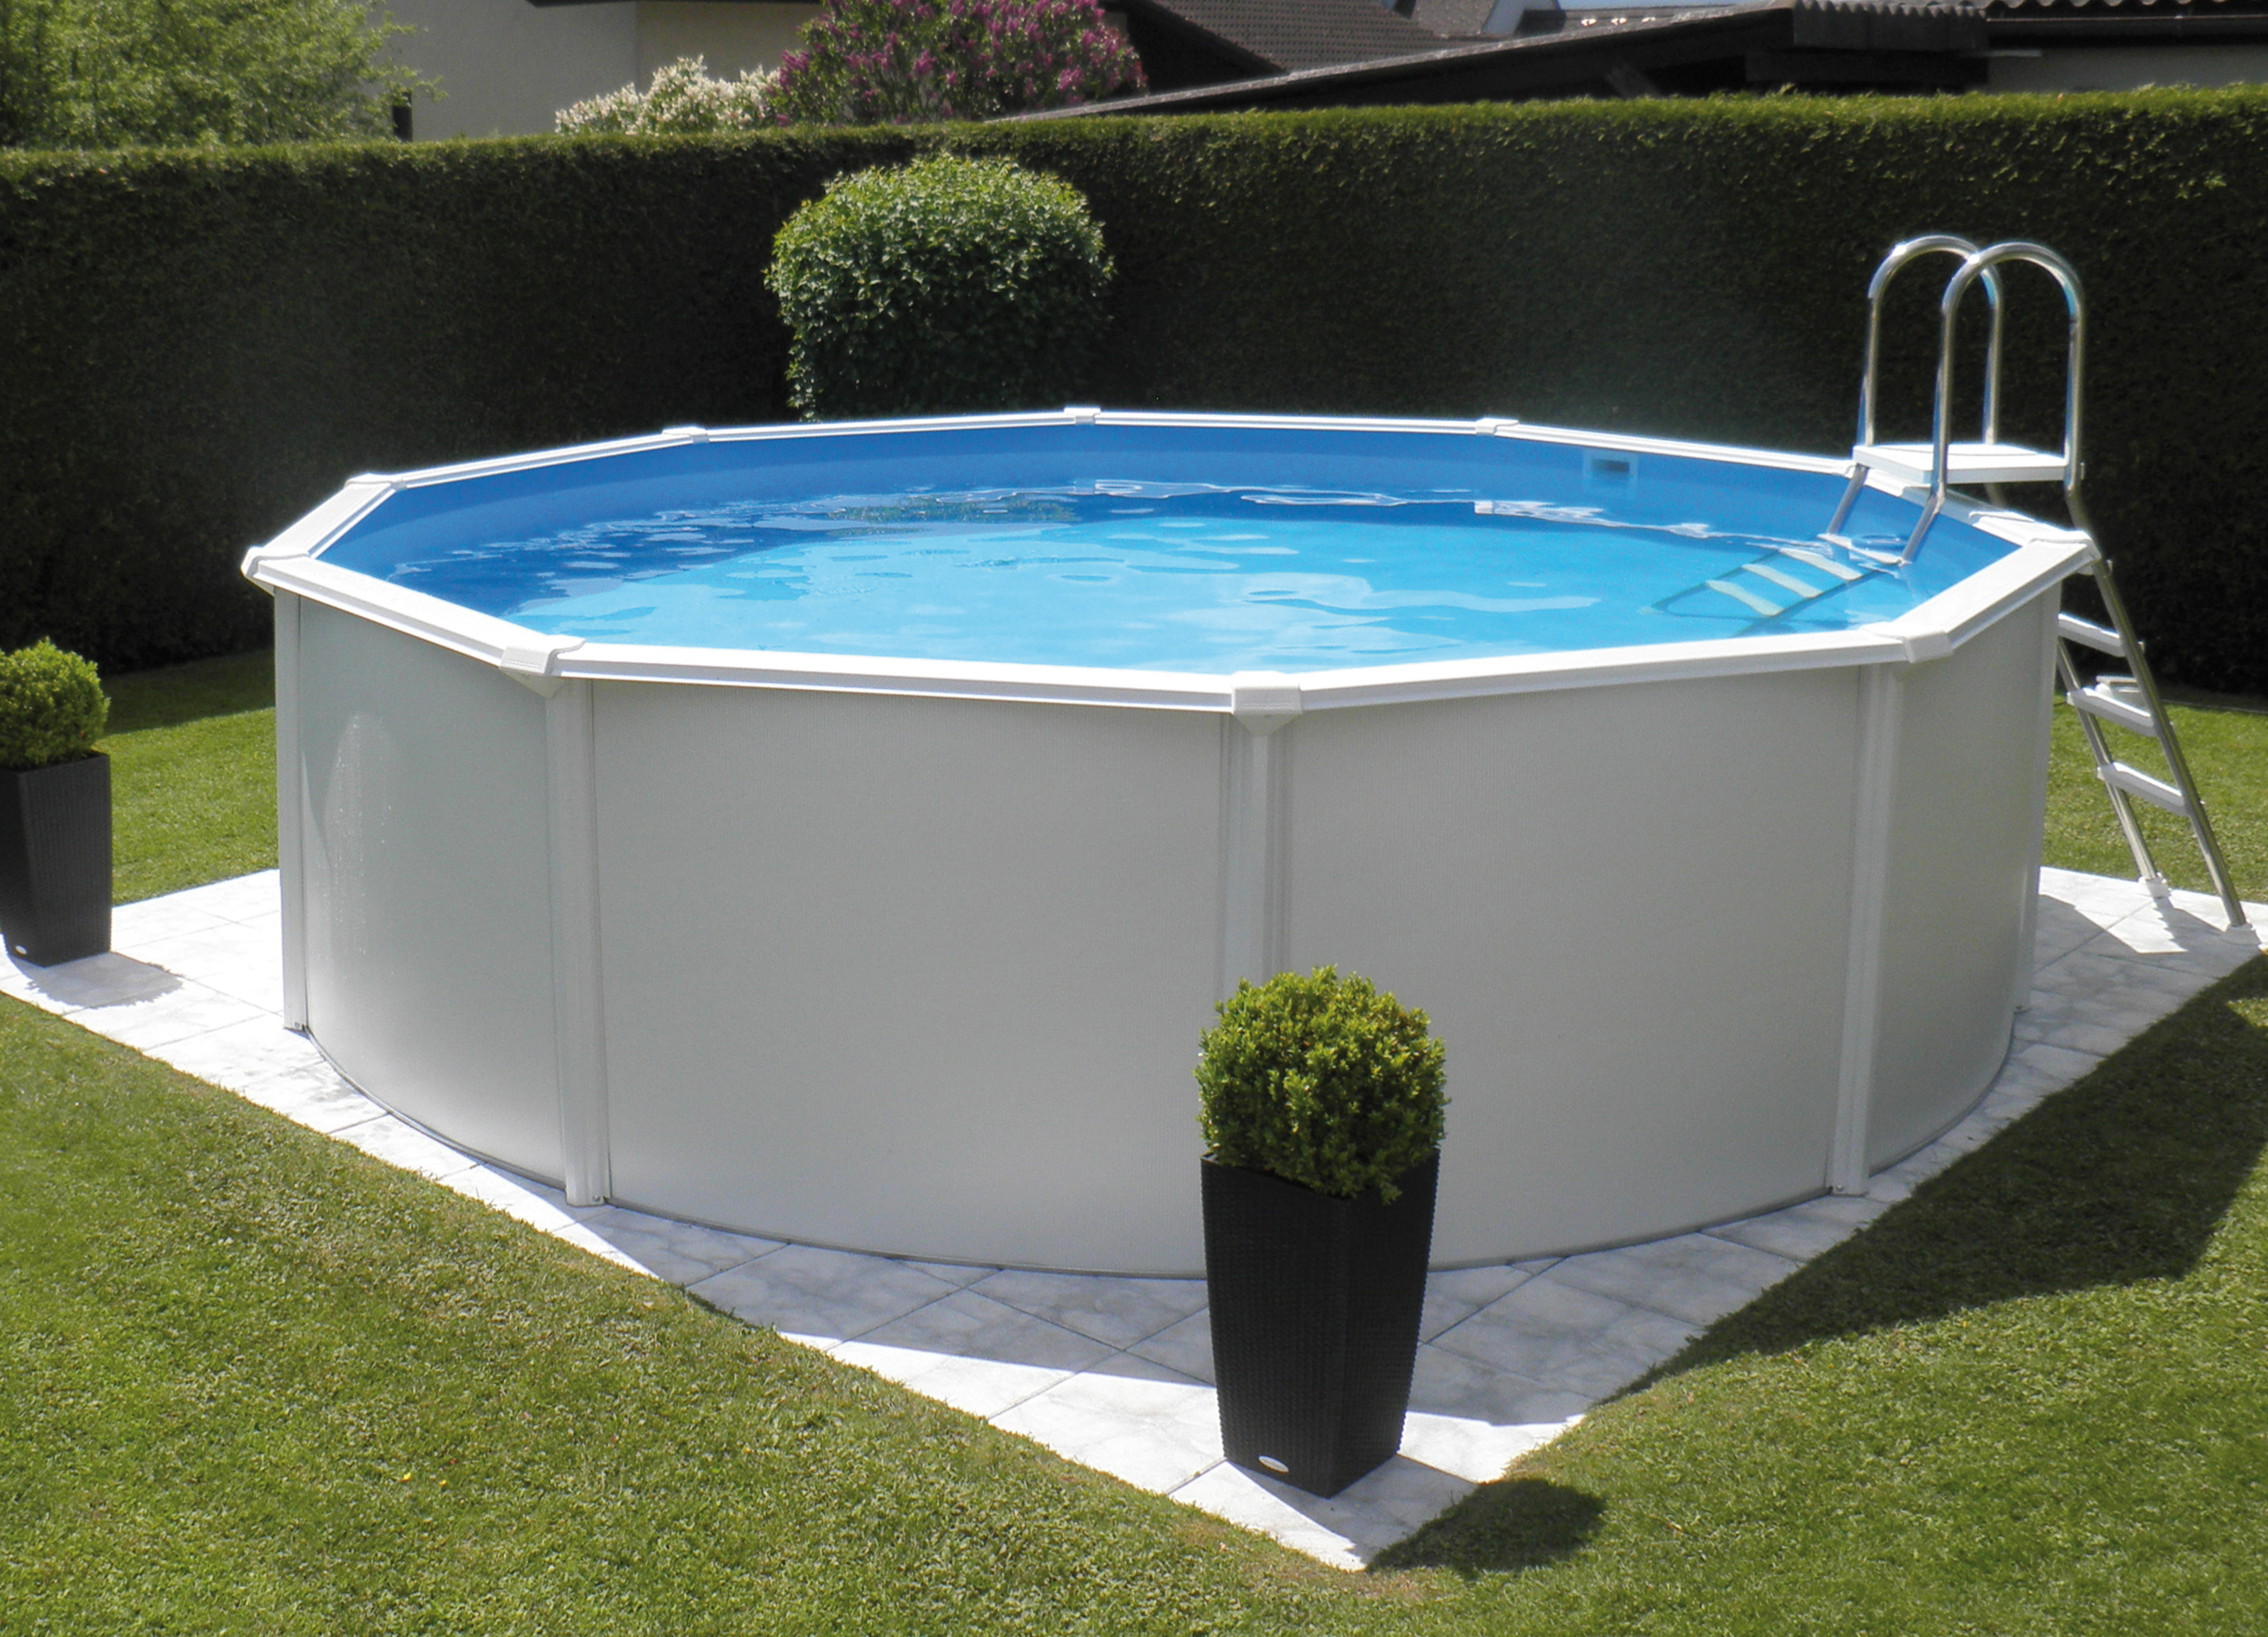 Steirerbecken pool 3 6x132m supreme de luxe rund 132 wei for Stahl pool rund